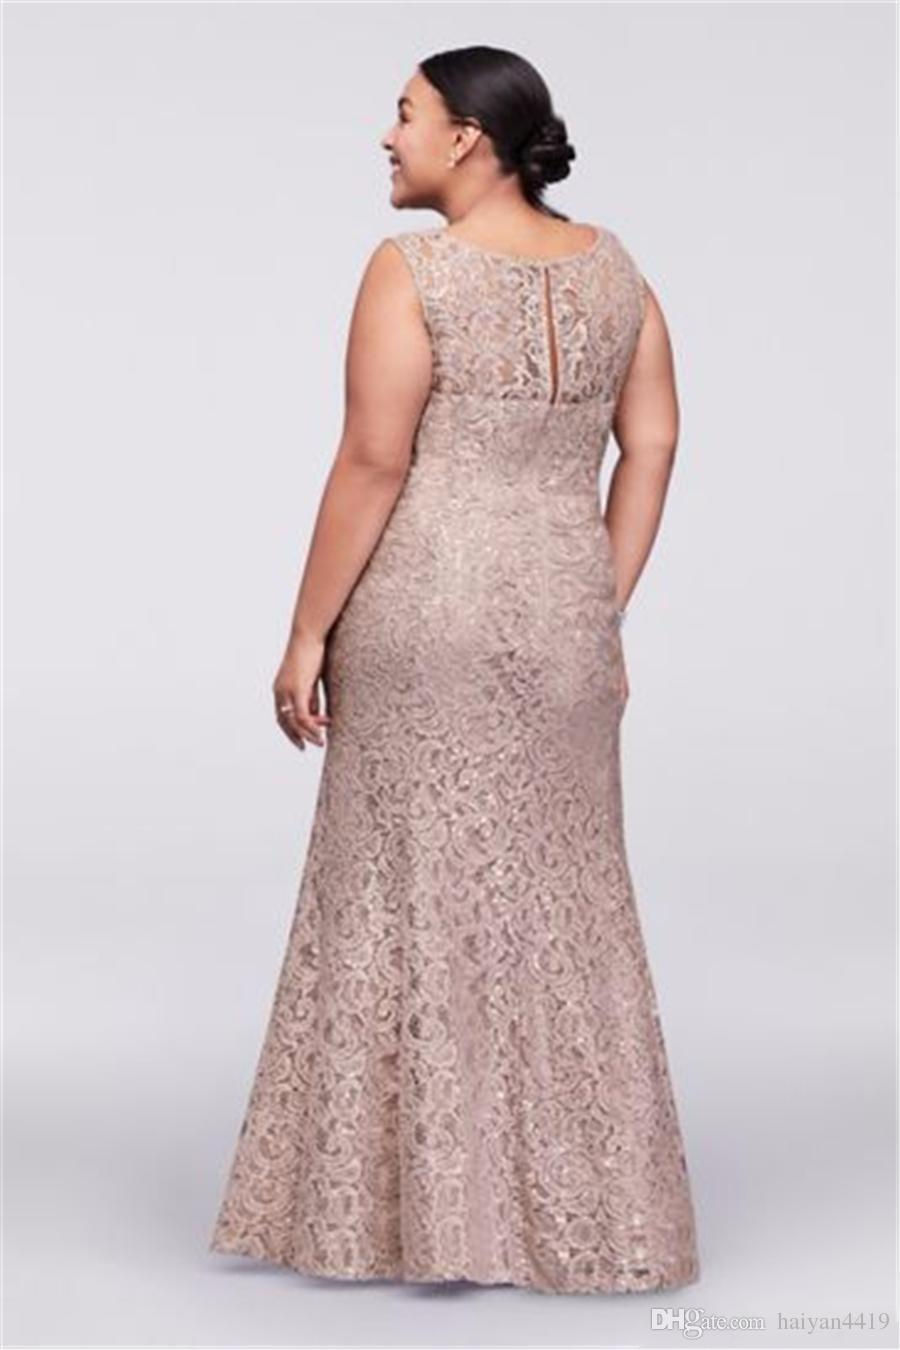 2017 Vintage Cheap Mother Of the Bride Dresses Jewel Neck Champagne Full Lace Mermaid Crystal With Wrap Plus Size Formal Wedding Guest Dress